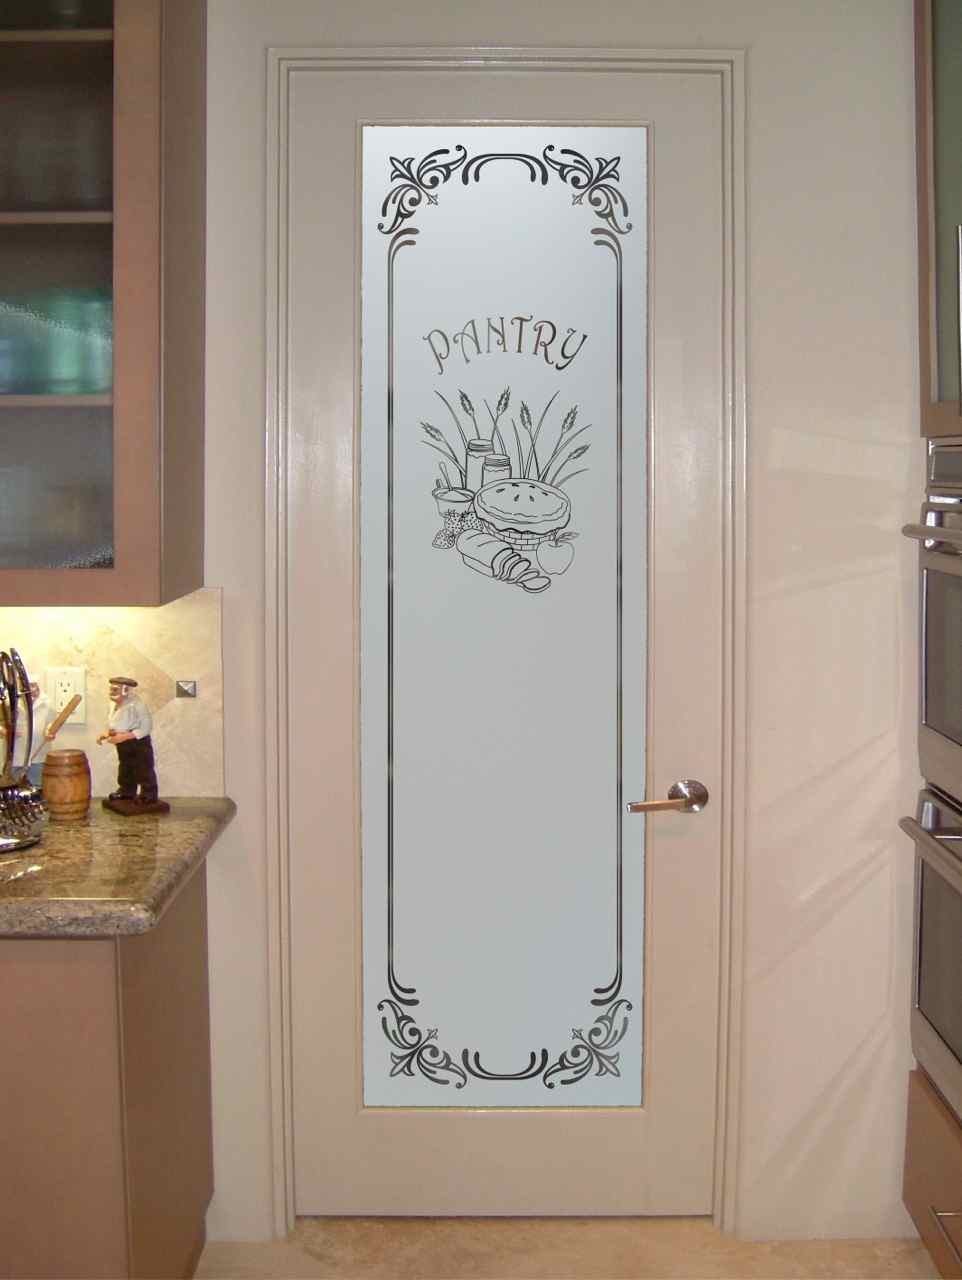 Tempered frosted glass interior door is marvelous